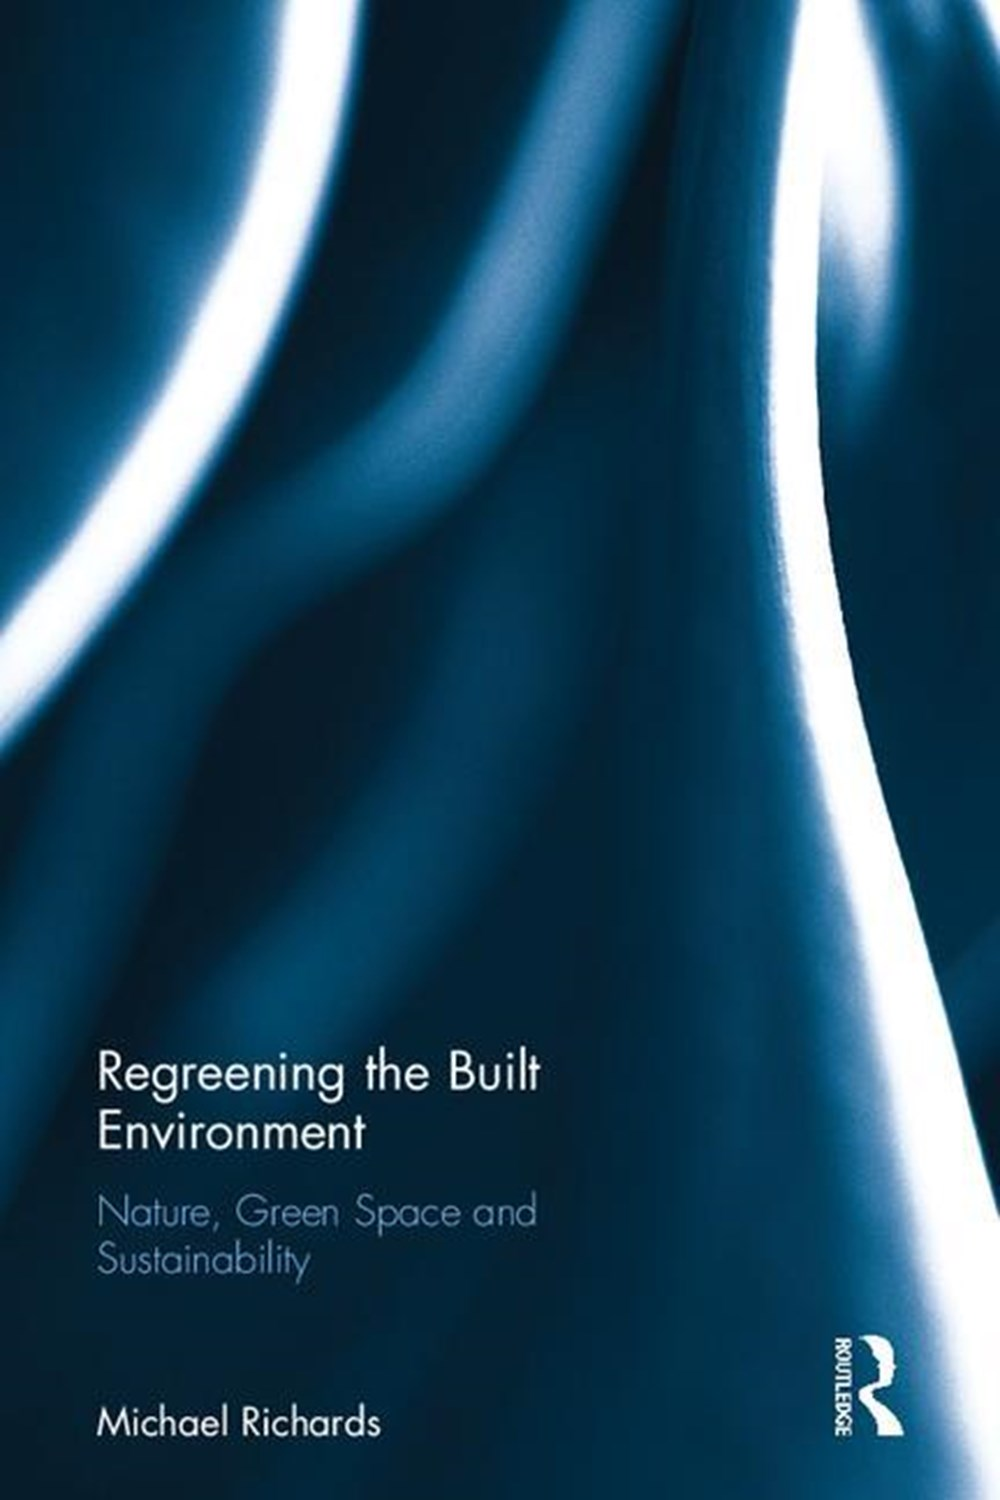 Regreening the Built Environment Nature, Green Space, and Sustainability